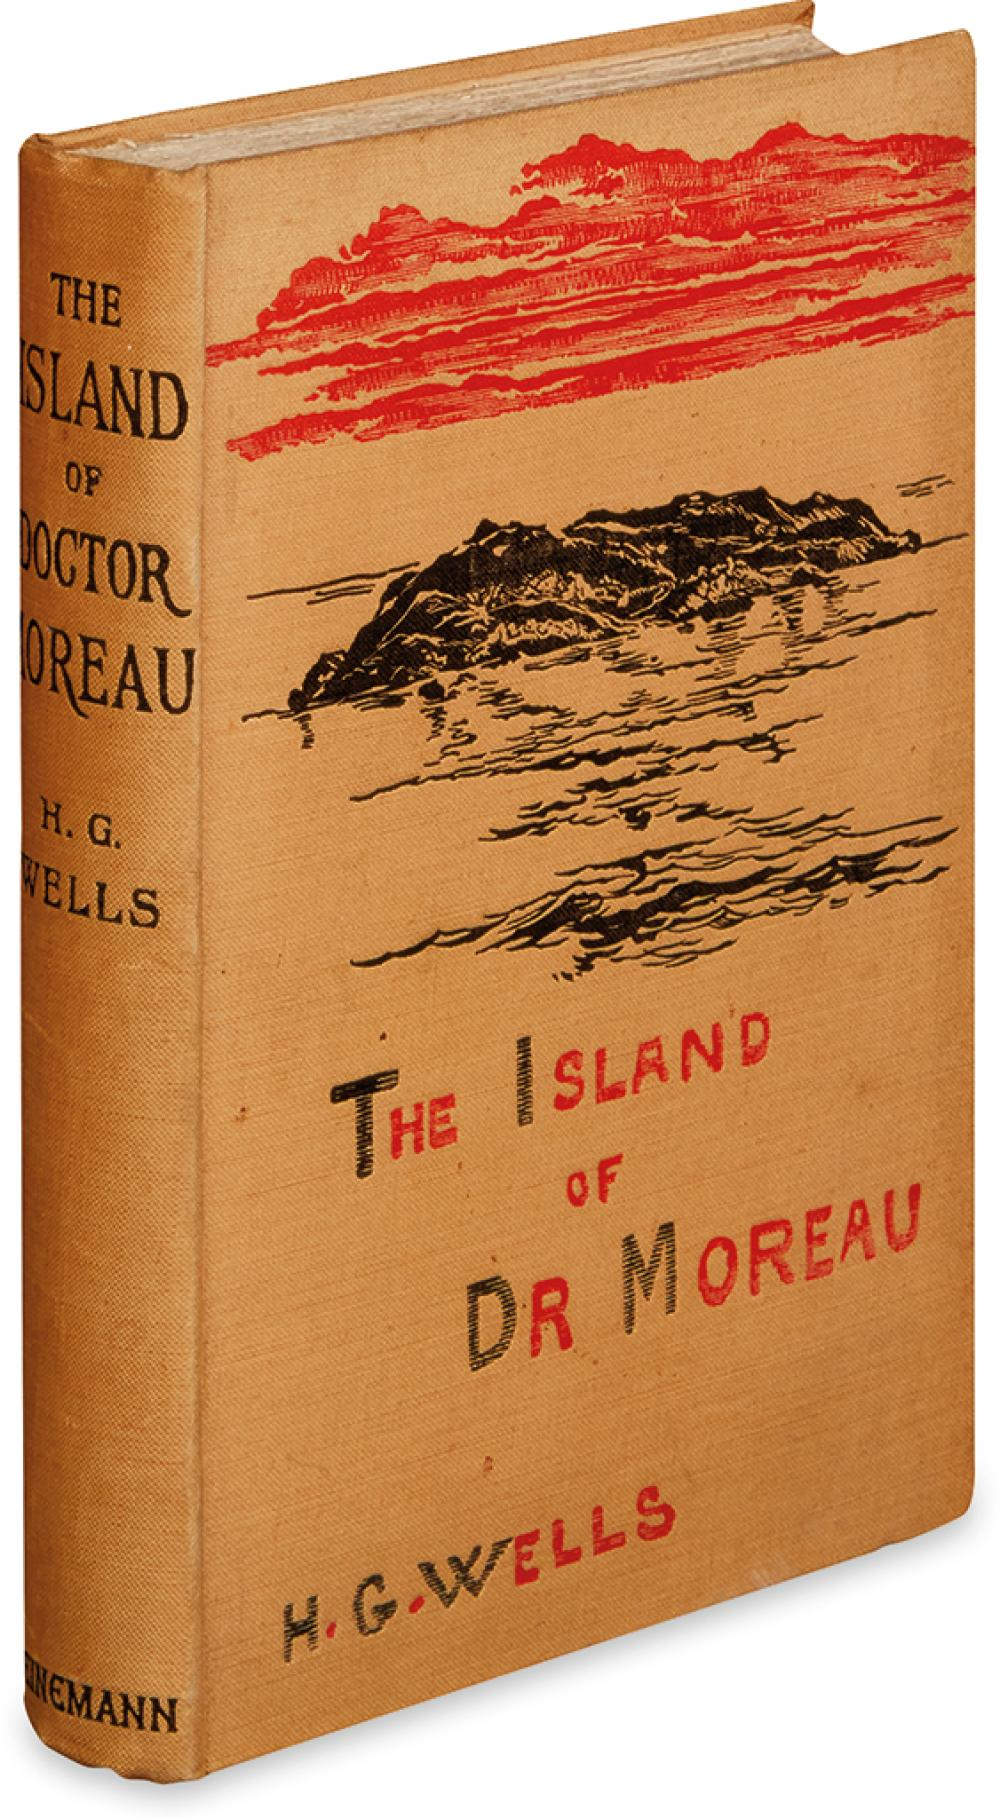 WELLS, H.G. Island of Doctor Moreau.